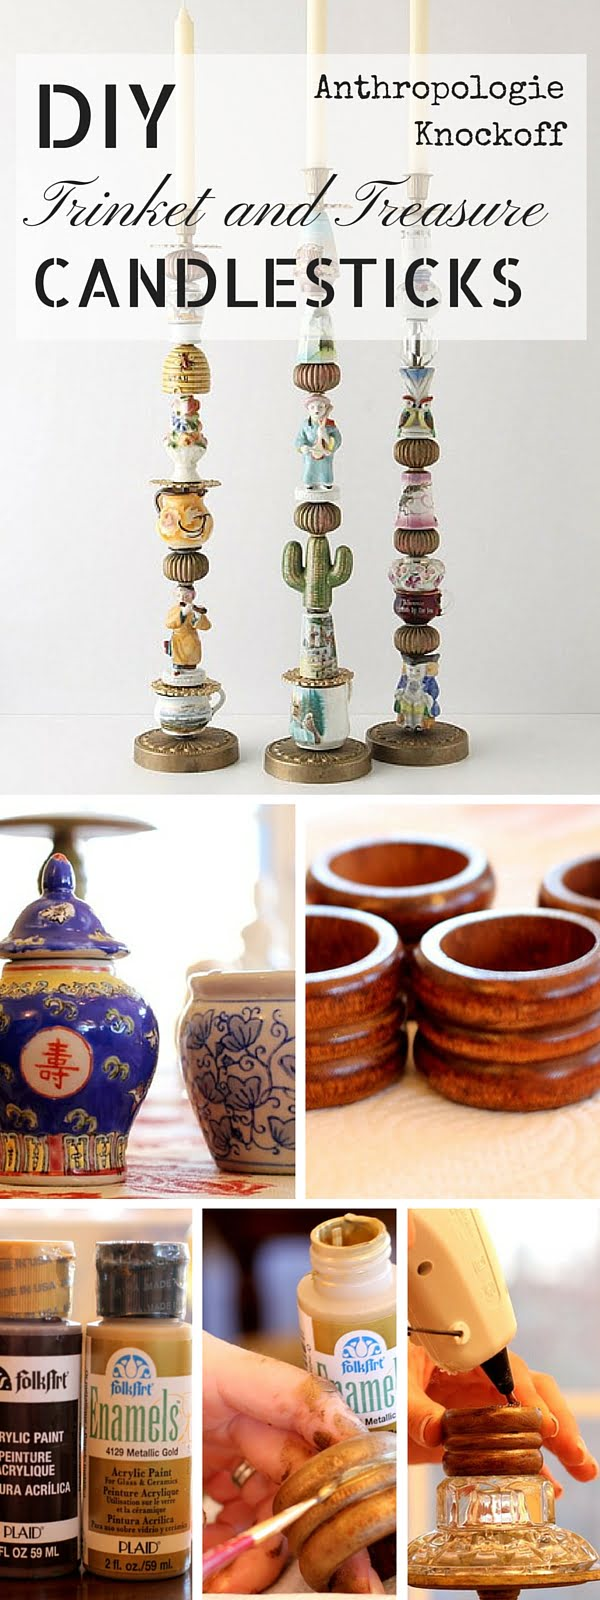 Check out the tutorial:   Trinket and Treasure Candlesticks Knockoff